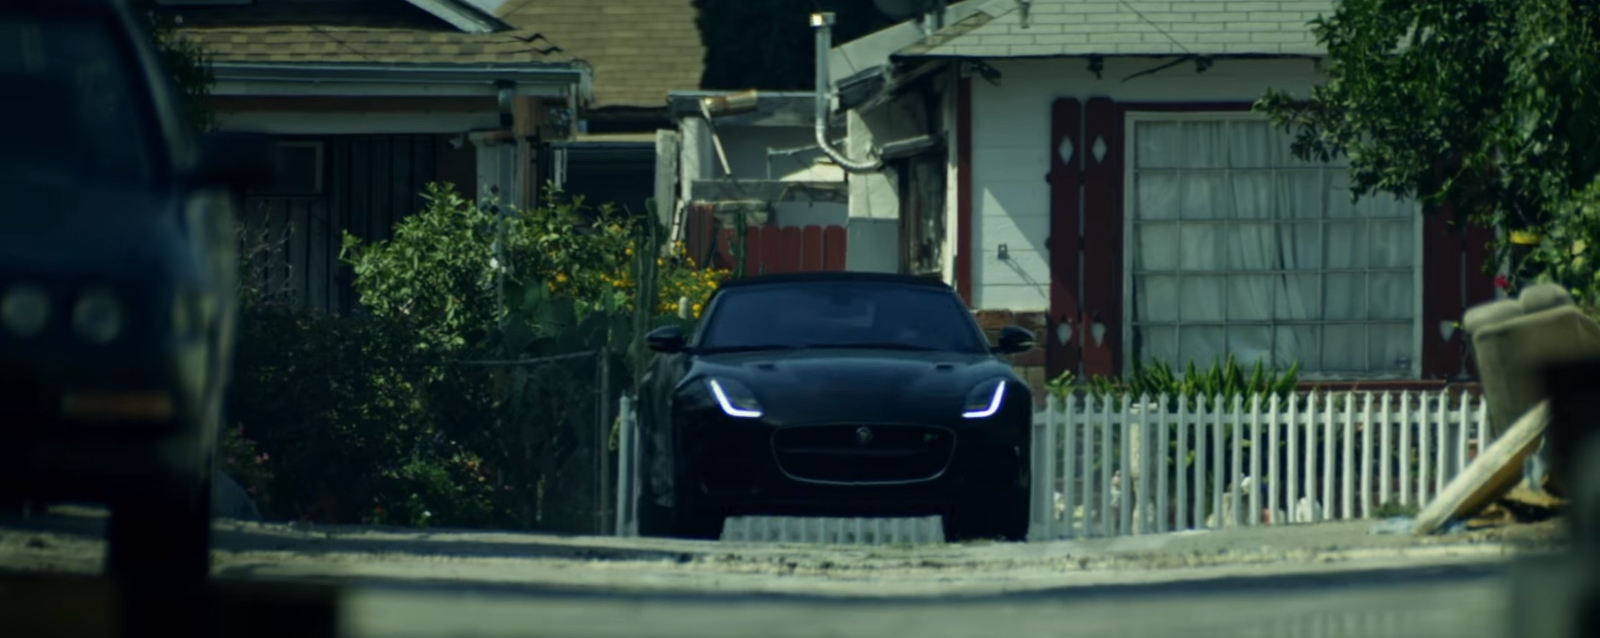 Jaguar F Type Convertible Car In Dusk Till Dawn By Zayn Ft